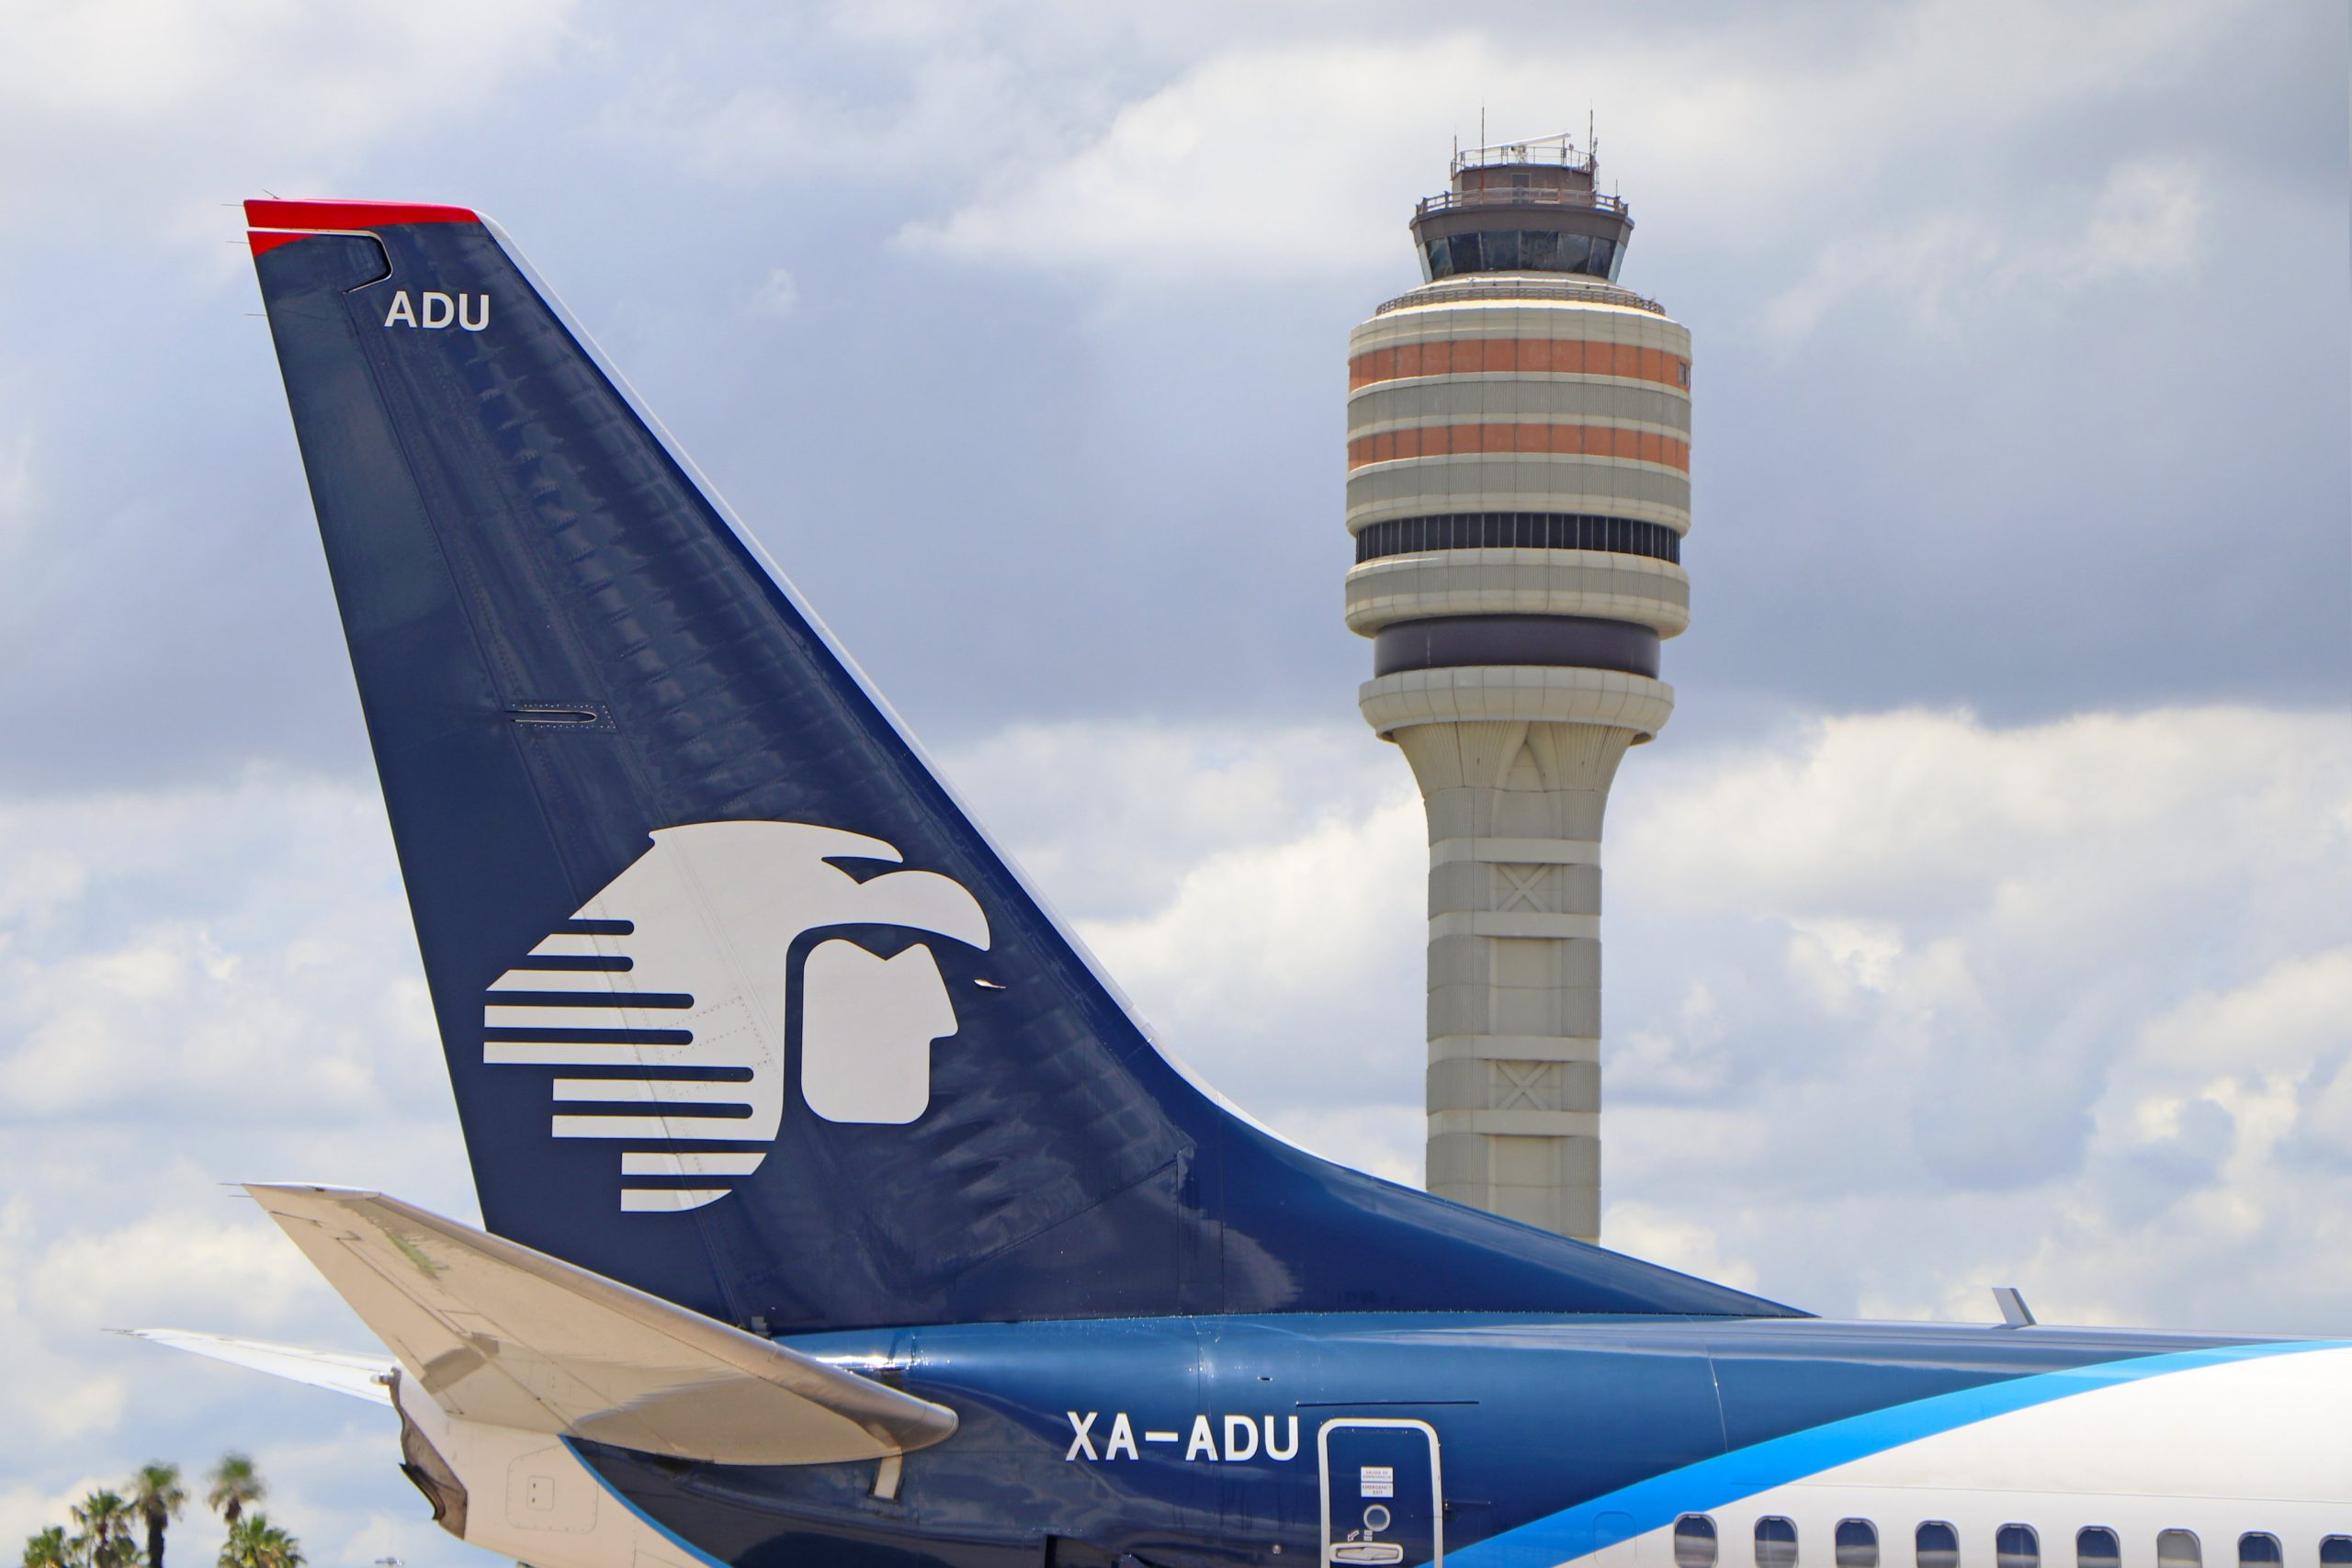 AeroMexico flight markers the return of service by international air carriers at Orlando International